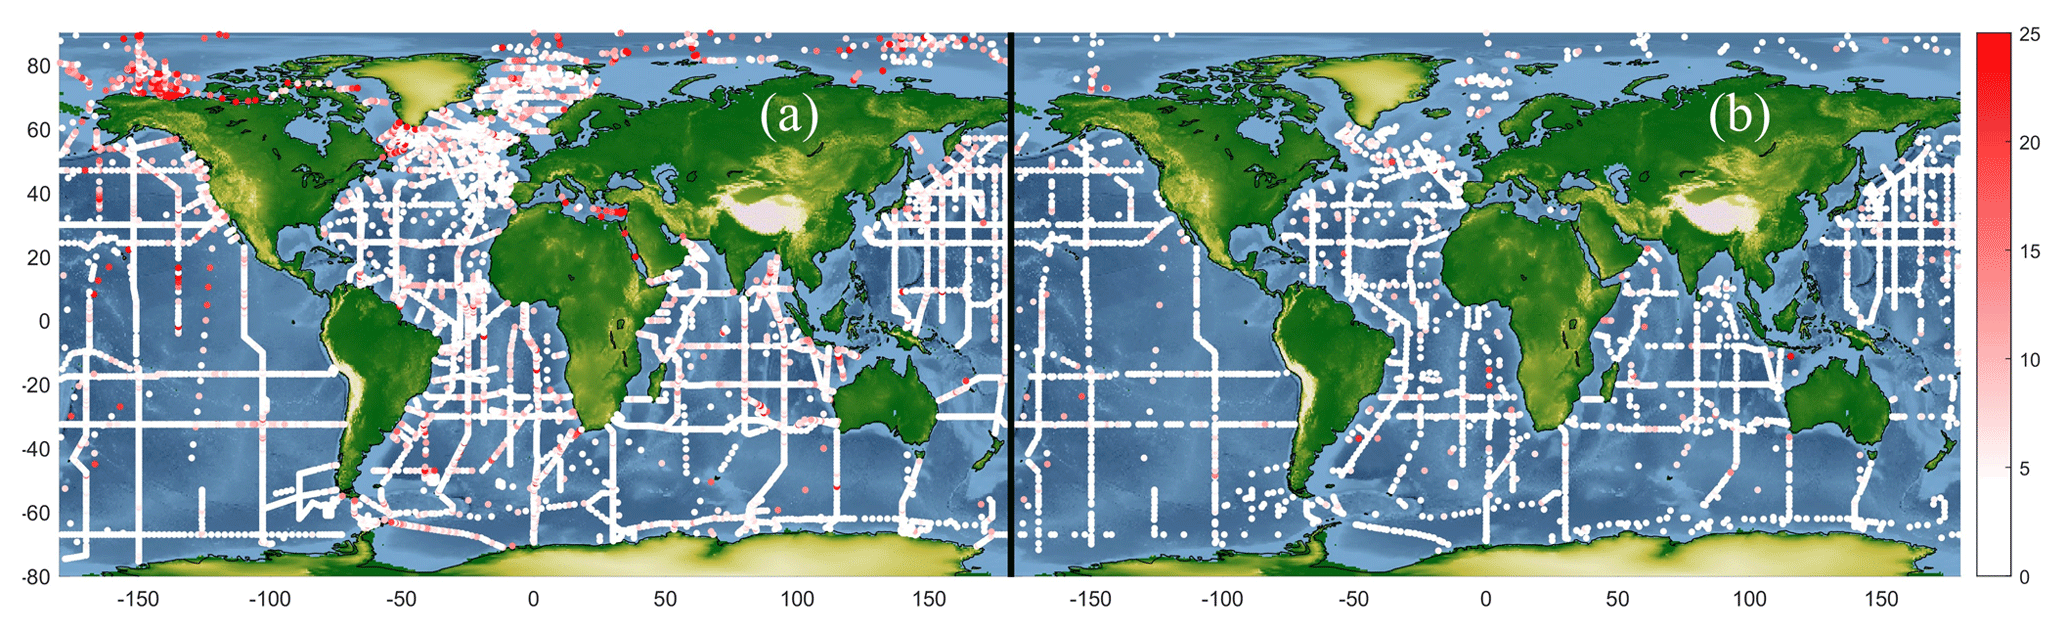 ESSD - A global monthly climatology of total alkalinity: a neural